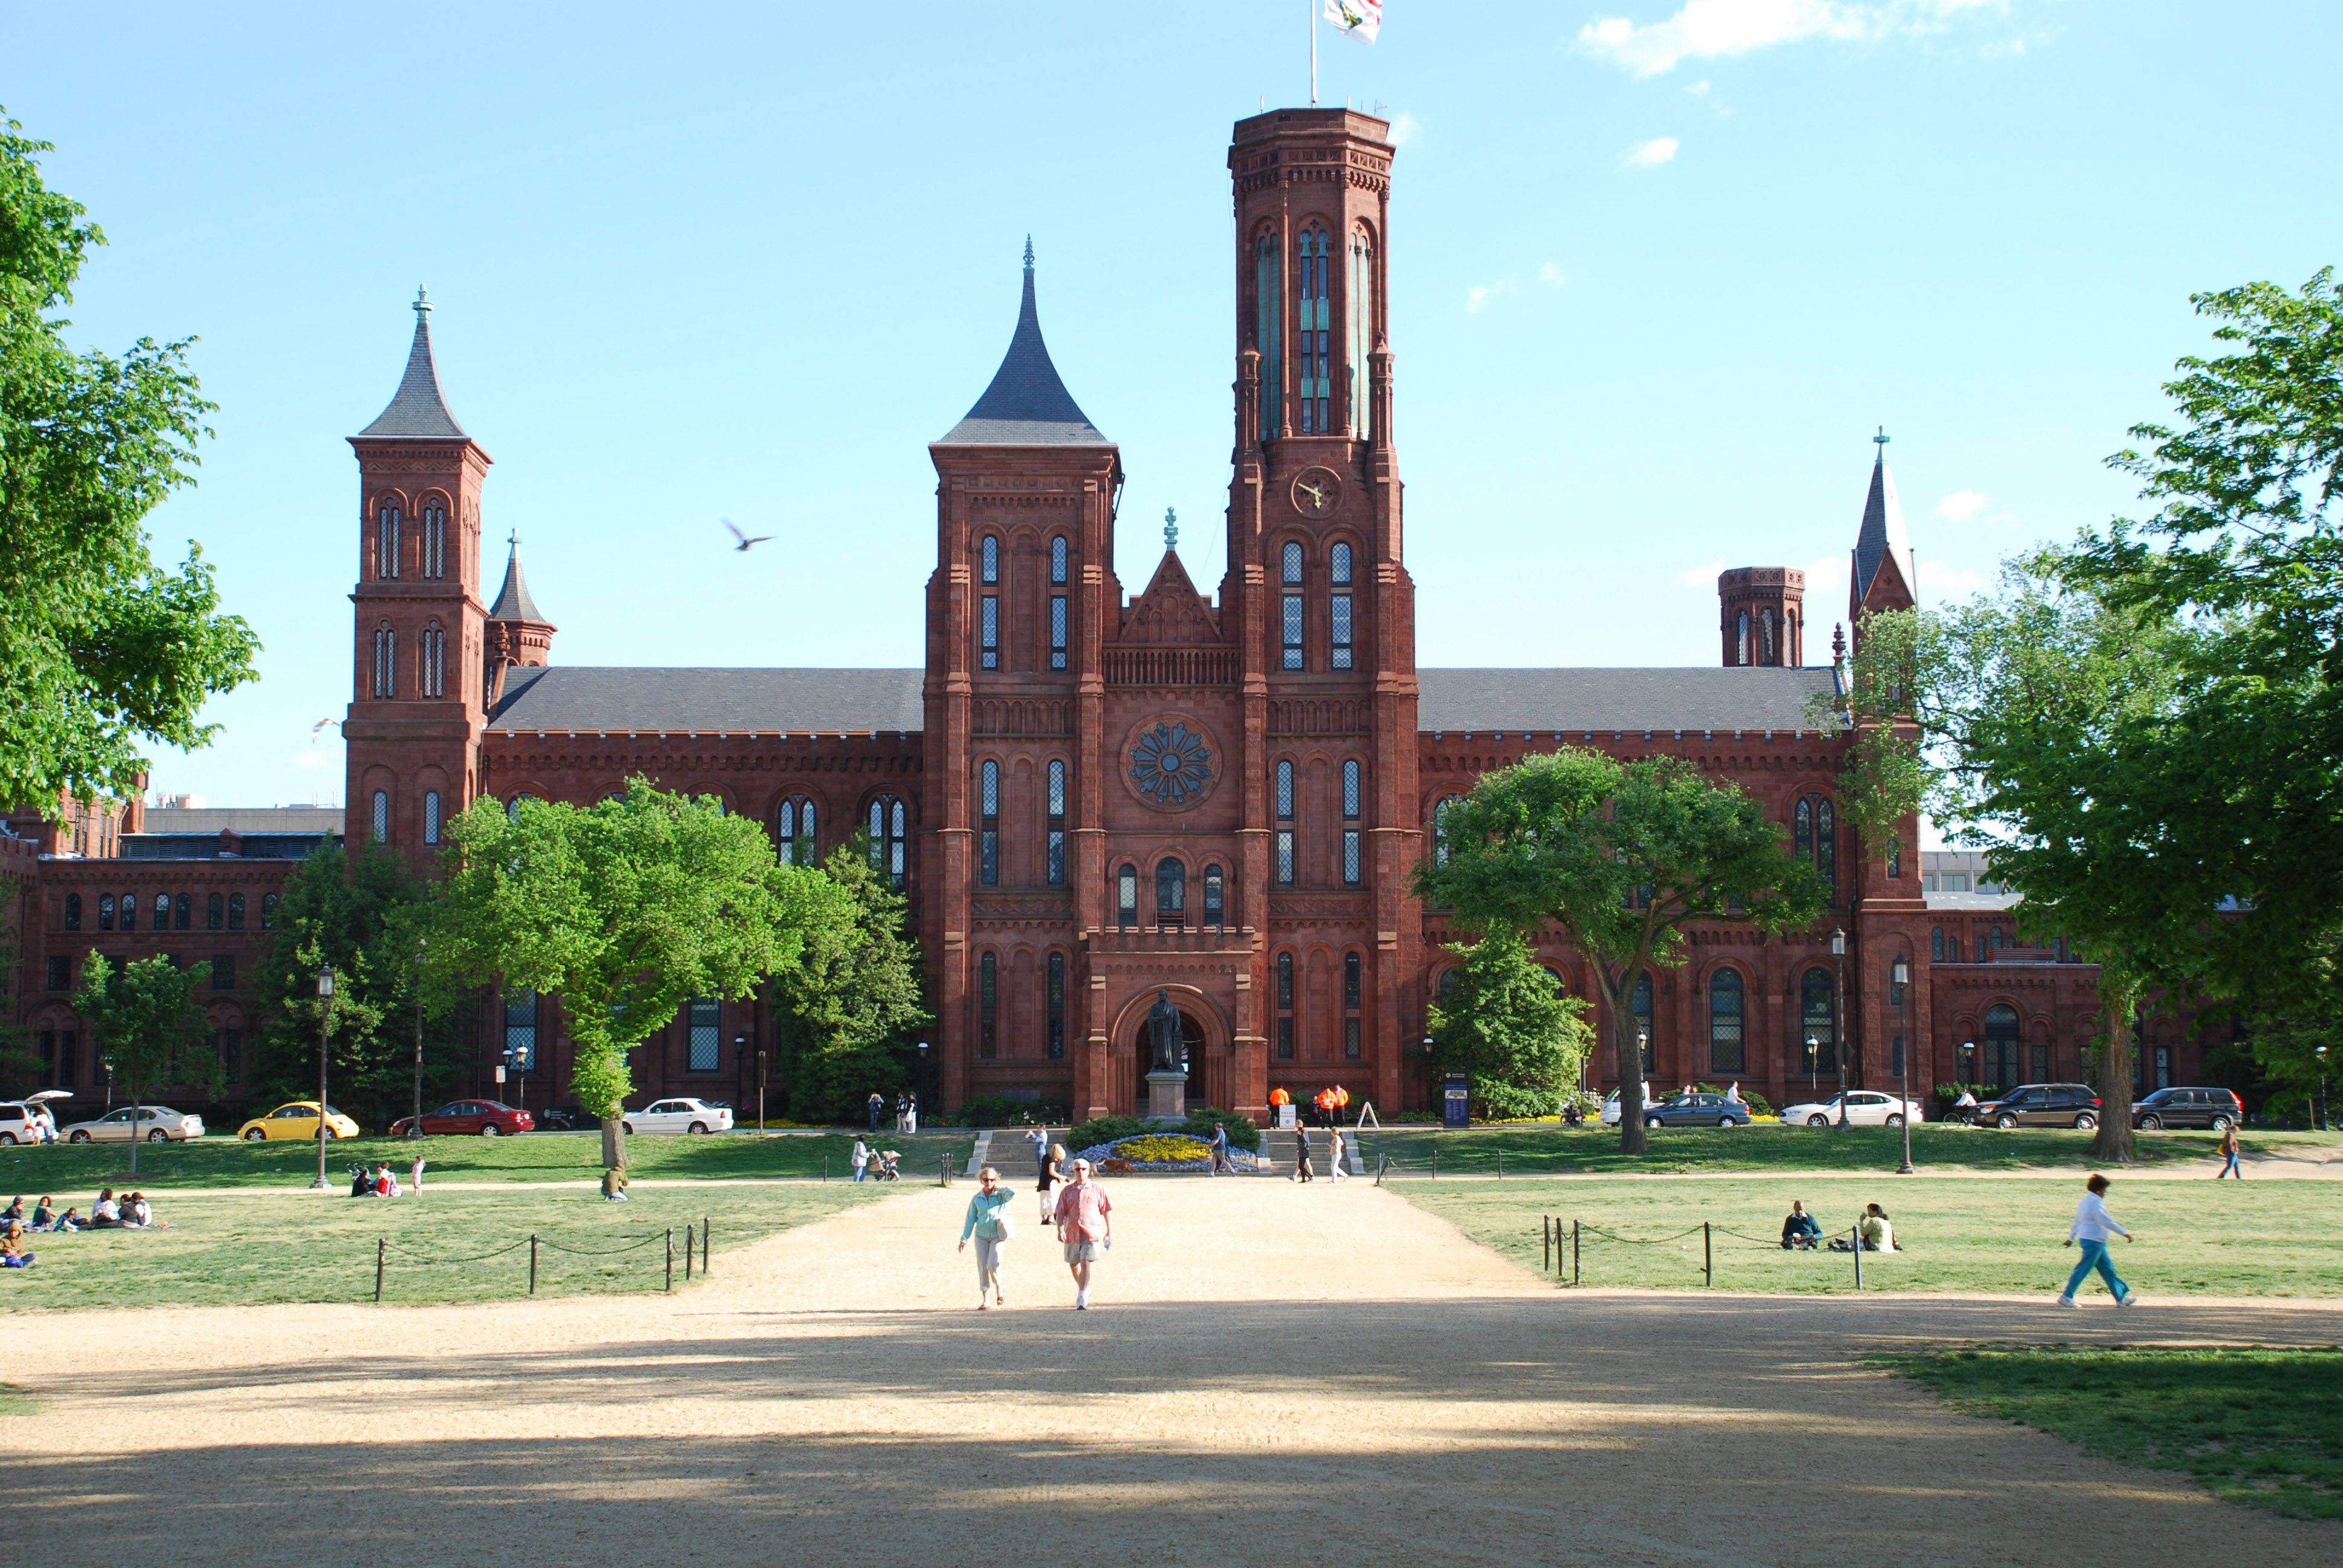 Smithsonian Castle on the National Mall : Travel Wallpapers and Stock